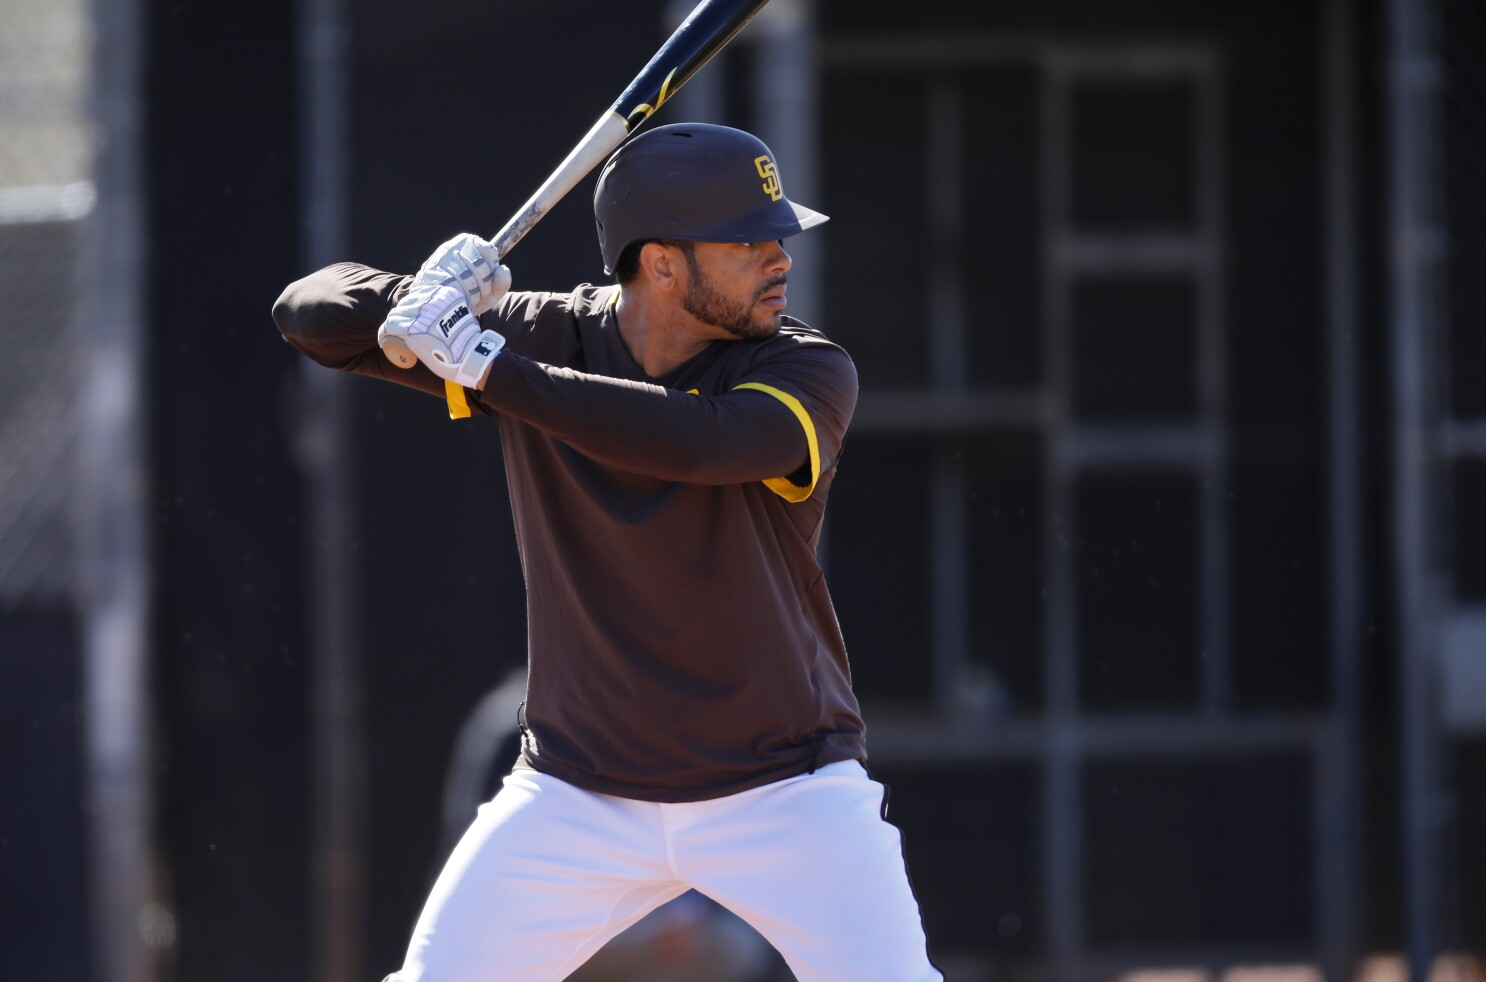 Tommy Pham debuts with Padres as DH, strikes out three times - The ...